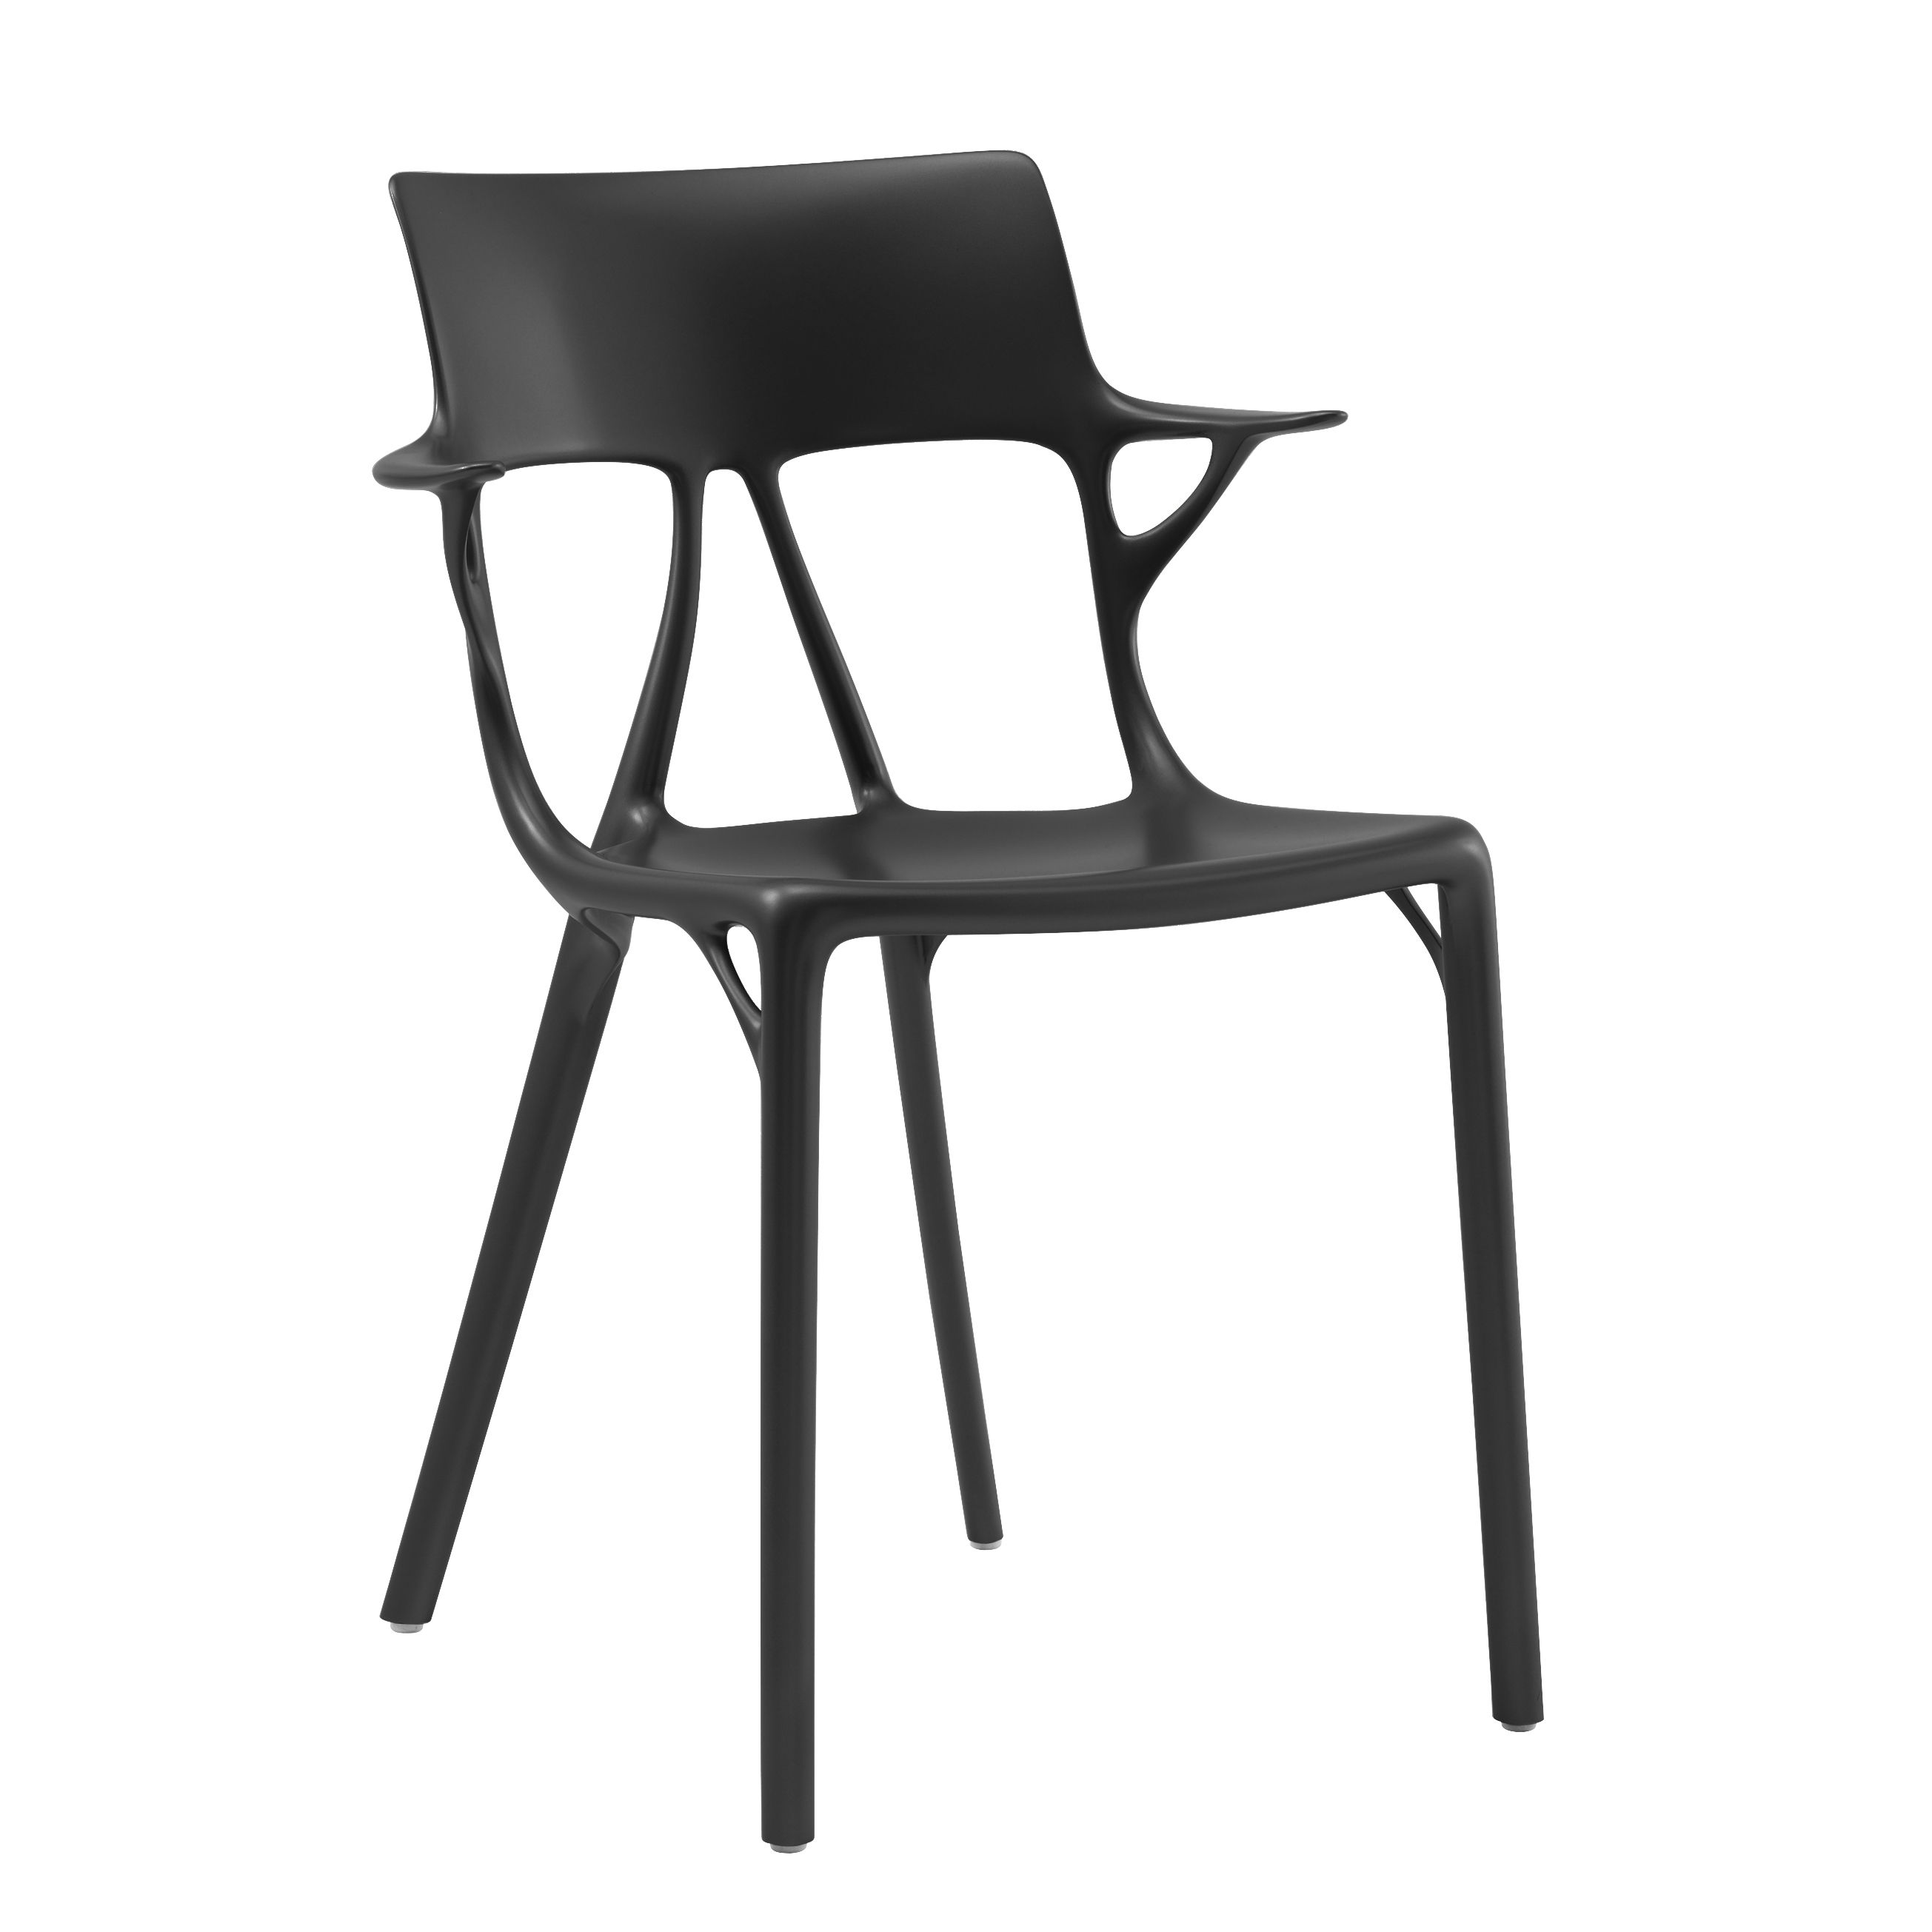 Furniture - Chairs - A.I Stackable armchair - / Designed by artificial intelligence by Kartell - Black - Recycled thermoplastic technopolymer